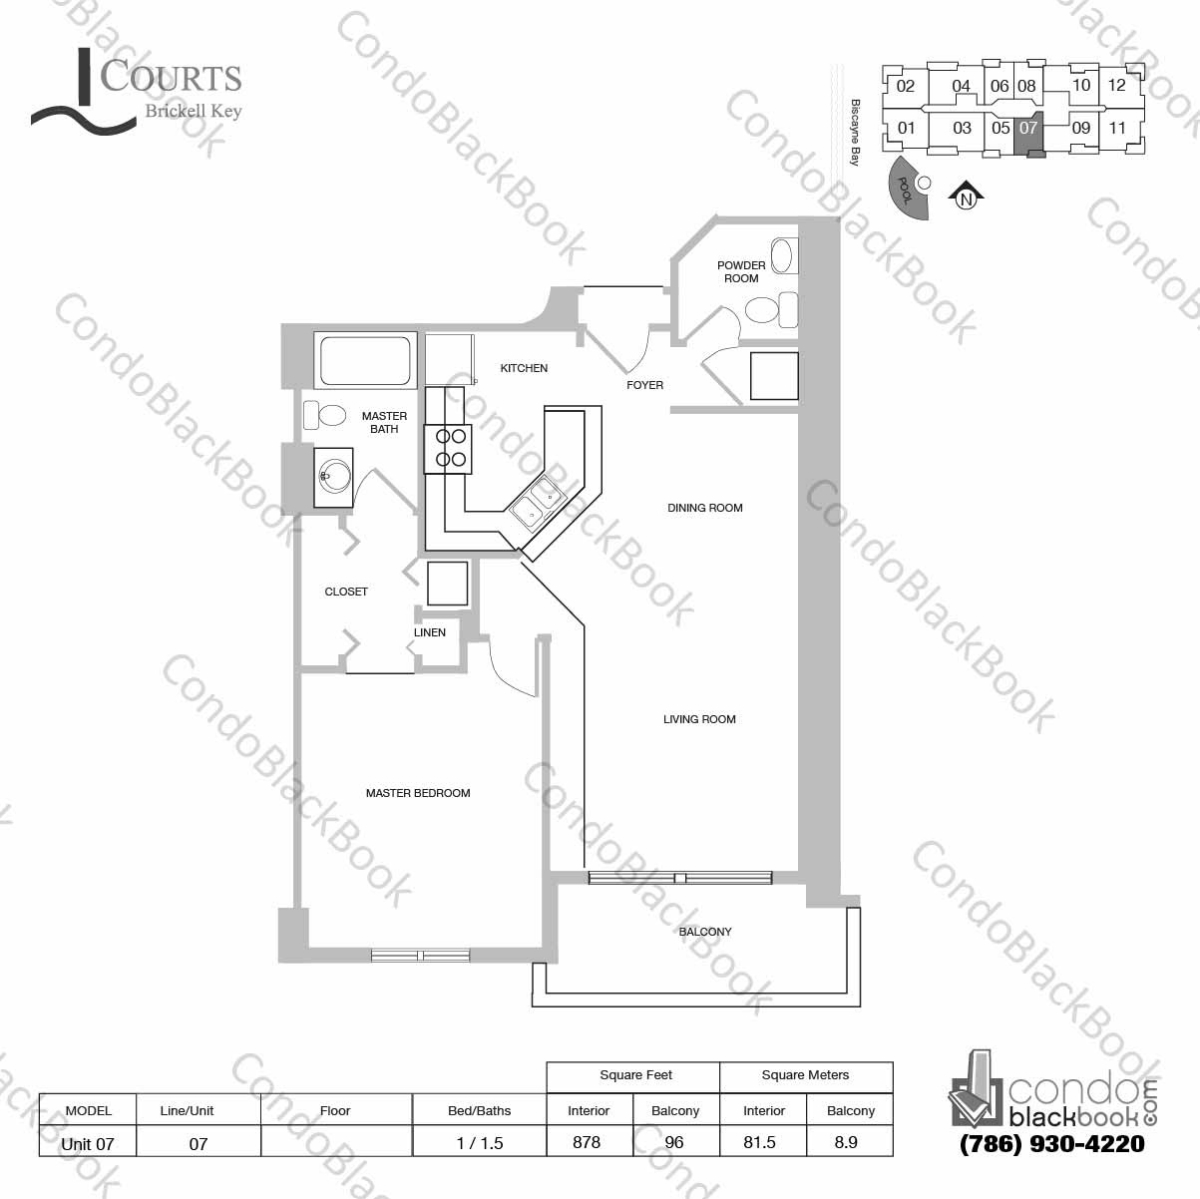 Floor plan for Courts Condo Brickell Key Brickell Key Miami, model Unit 07, line 07, 1 / 1.5 bedrooms, 878 sq ft